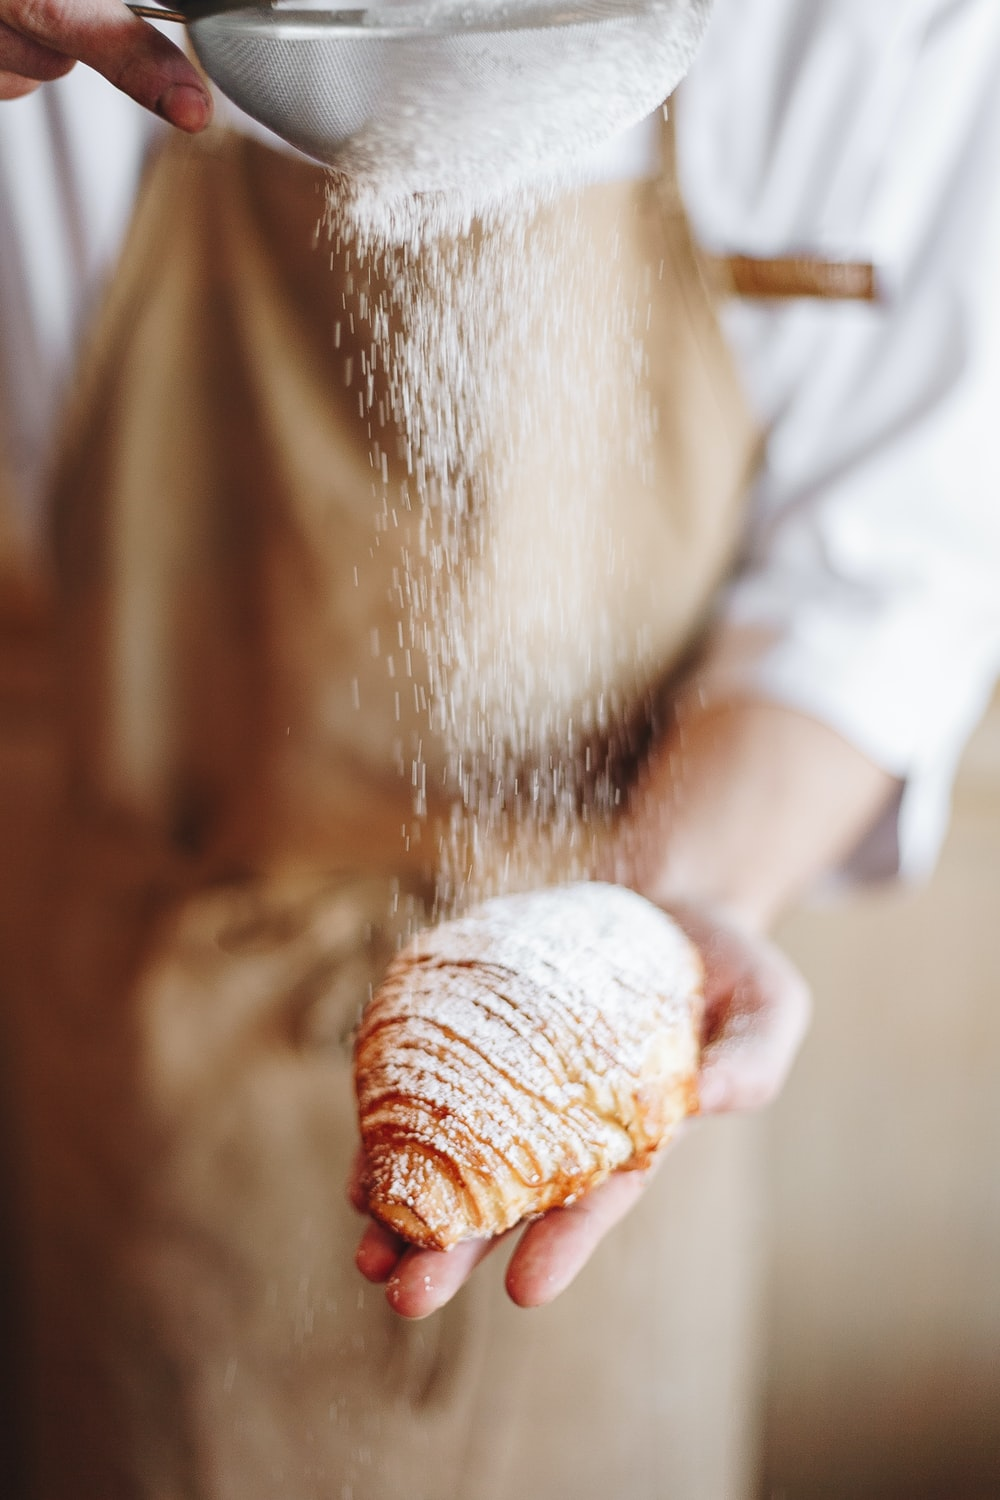 person in white shirt holding brown bread